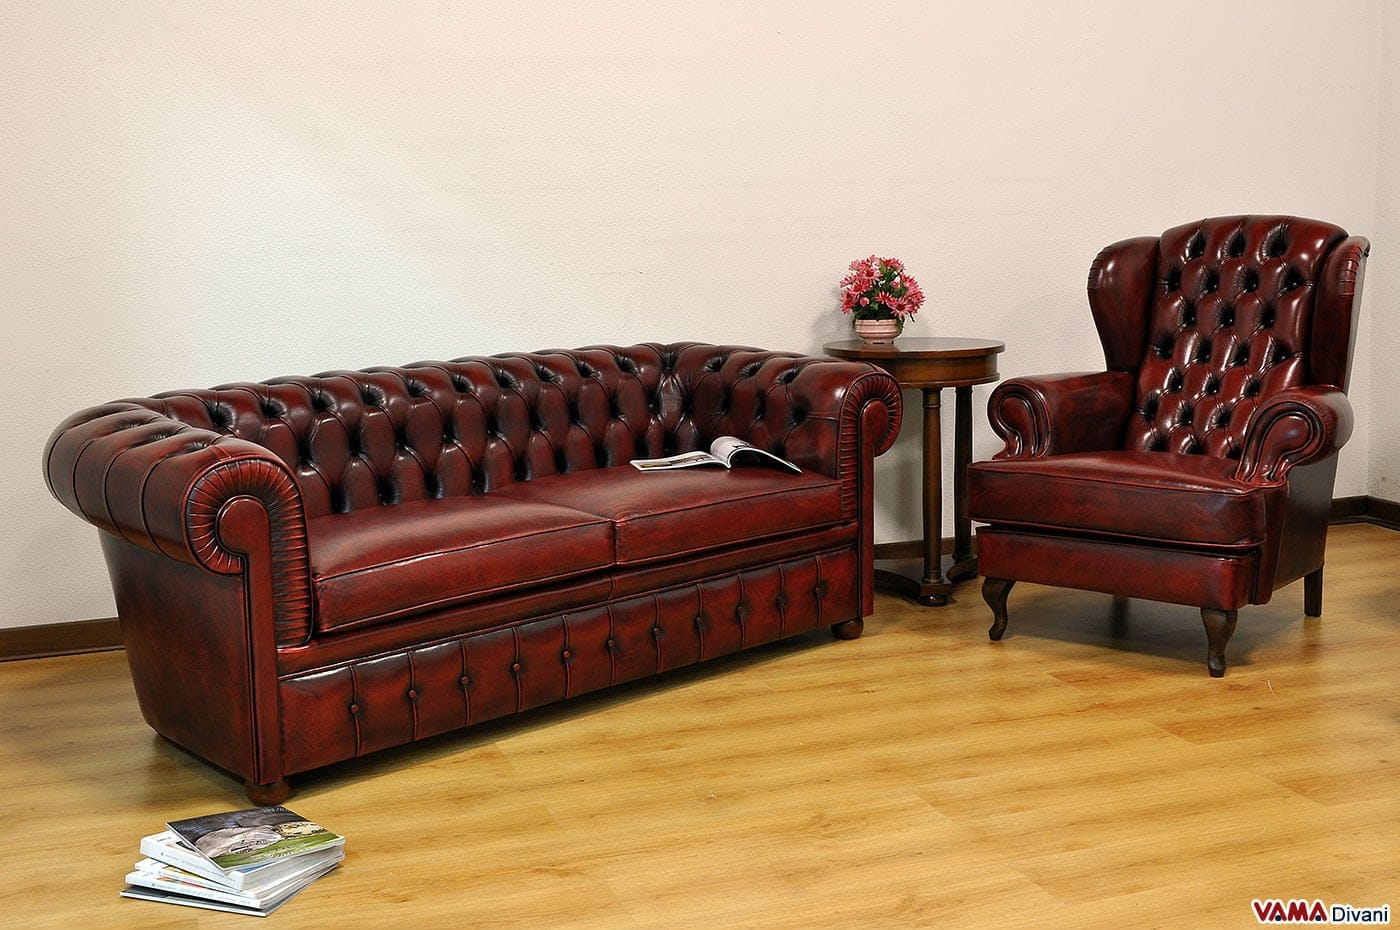 Divano chesterfield large vama divani for Divano bordeaux